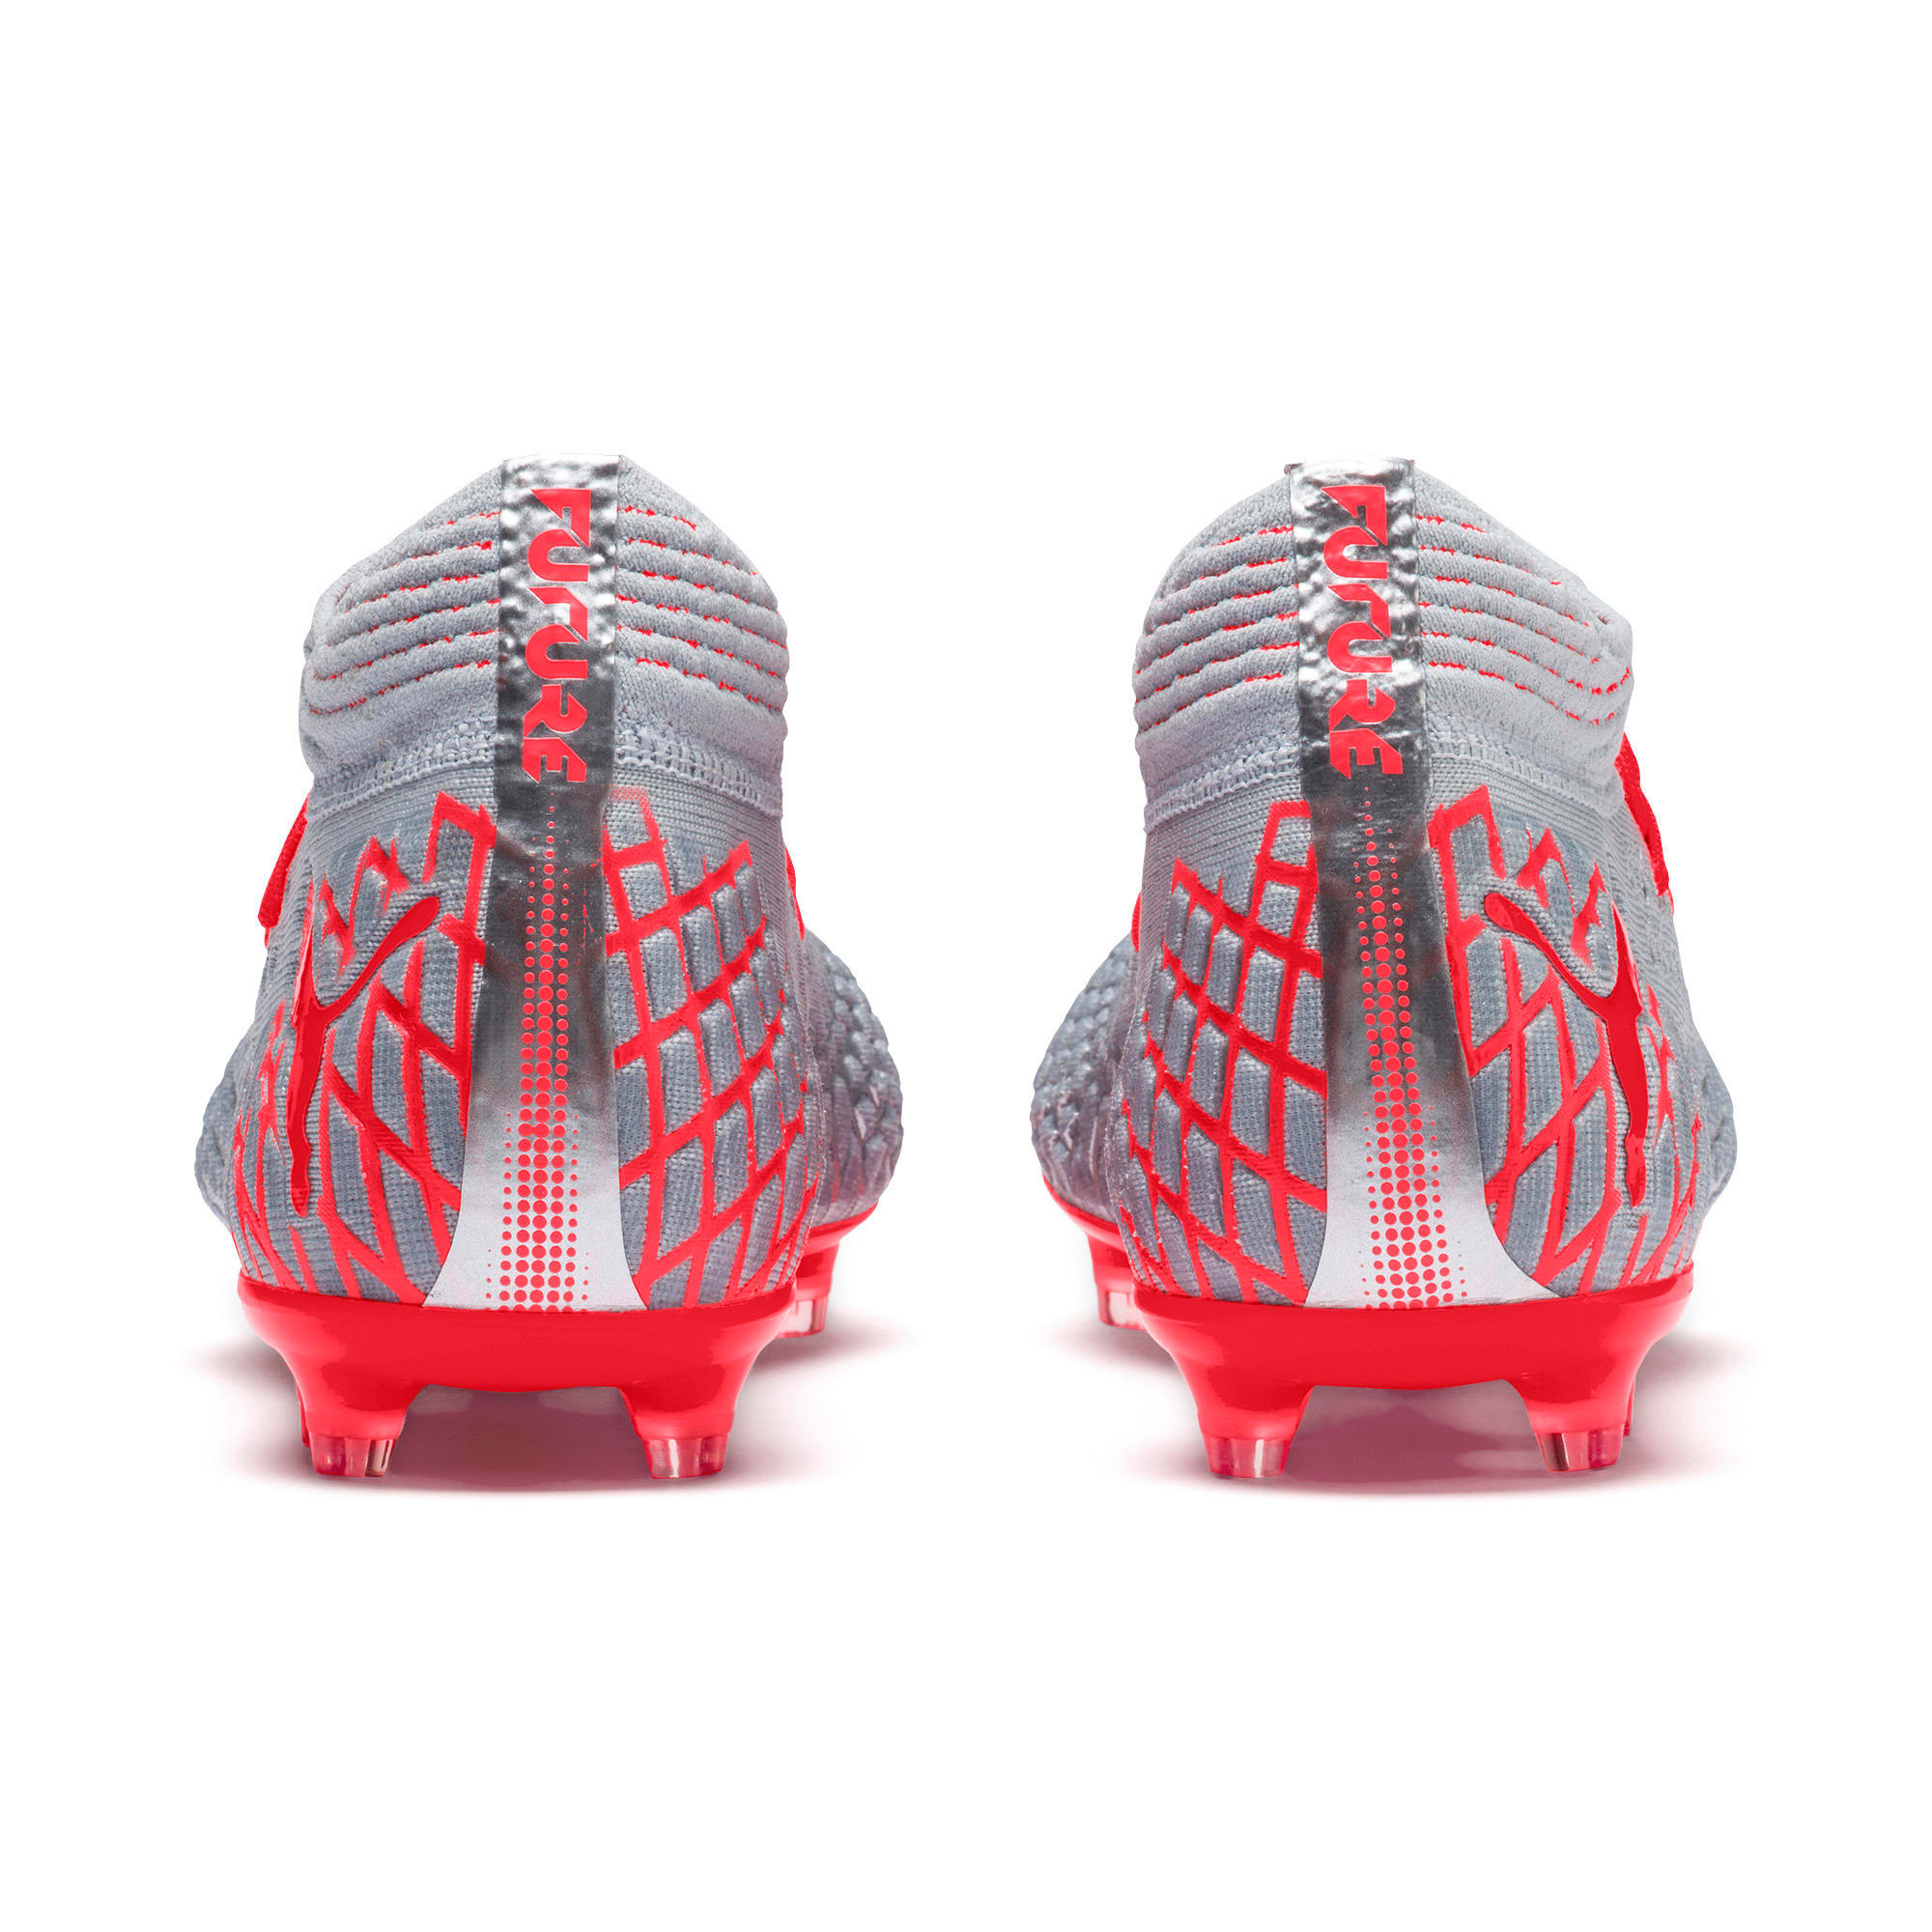 Thumbnail 4 of FUTURE 4.1 NETFIT FG/AG Herren Fußballschuhe, Blue-Nrgy Red-High Risk Red, medium